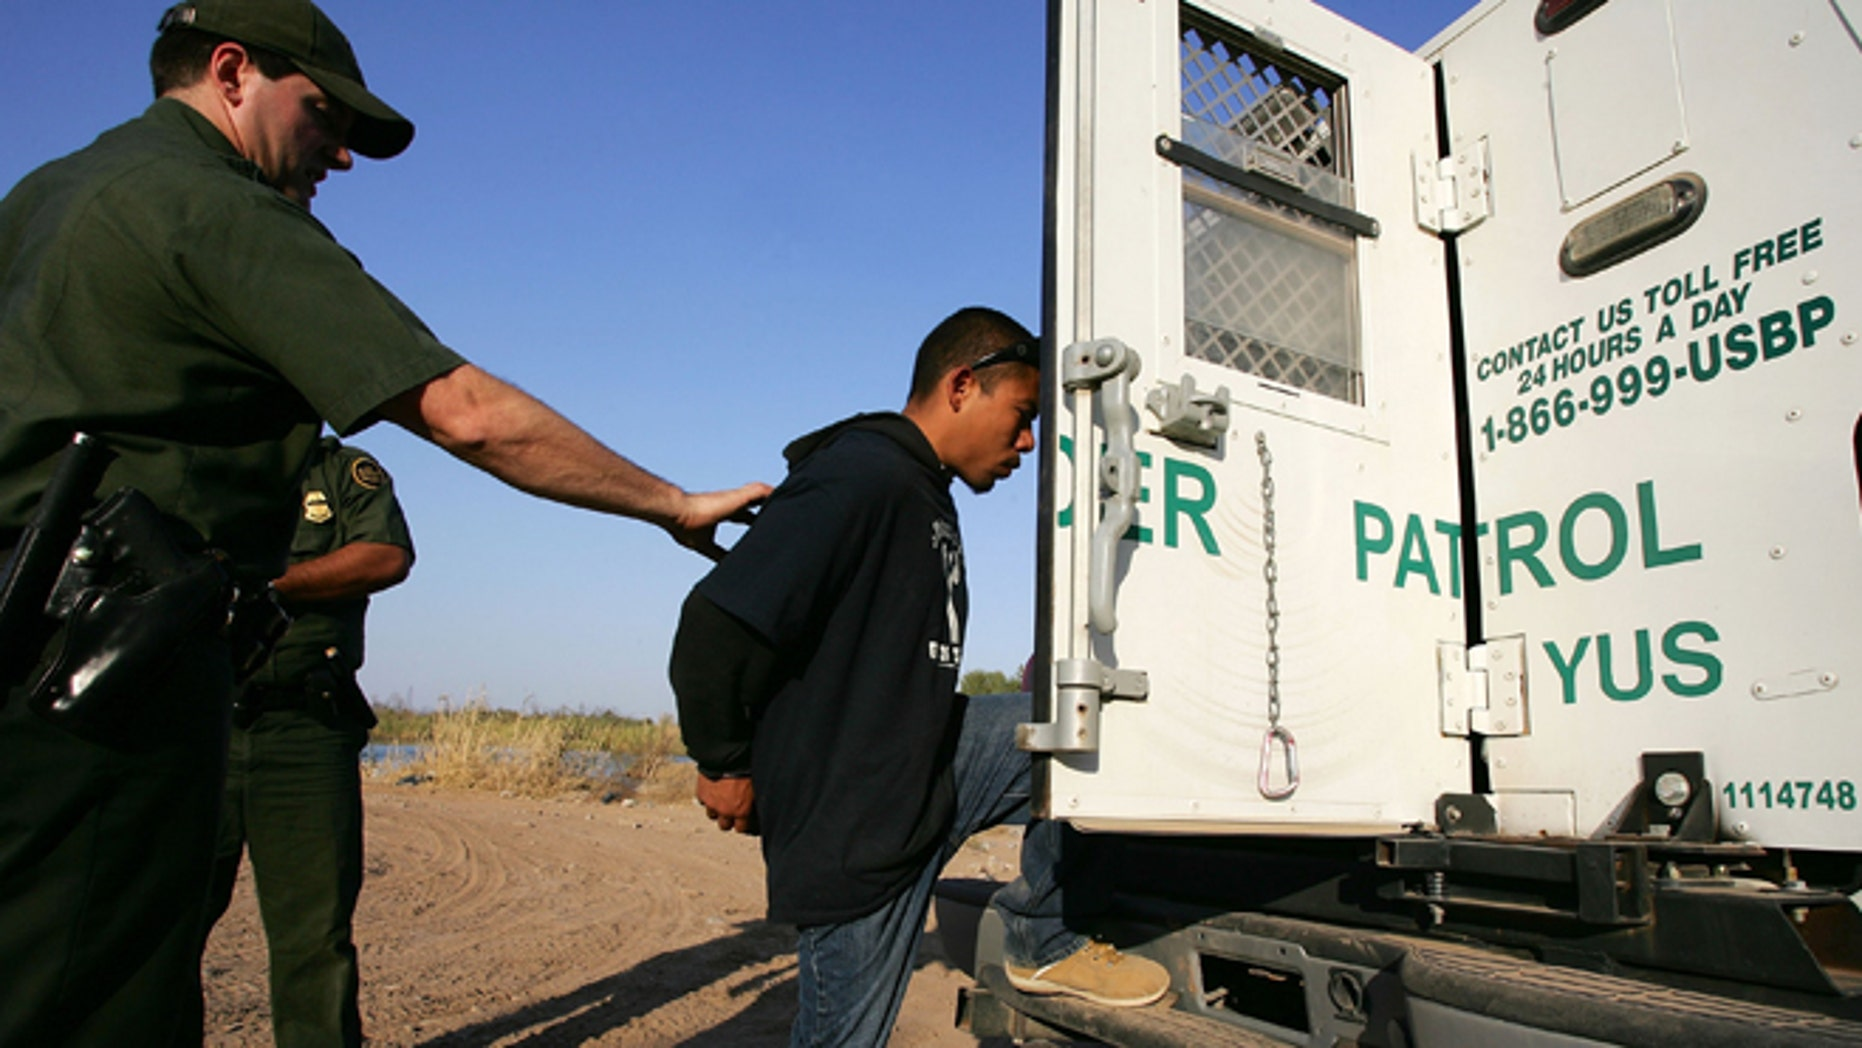 YUMA, AZ - MARCH 17:  A suspected illegal immigrant is placed in the back of a U.S. Customs and Border Protection border patrol vehicle after being apprehended on the California side of the Colorado River on March 17, 2006 near Yuma, Arizona. As Congress begins a new battle over immigration policy, U.S. Customs and Border Protection (CBP) border patrol agents in Arizona are struggling to control undocumented immigrants that were pushed into the region by the 1990?s border crack-down in California called Operation Gatekeeper. A recent study by the Pew Hispanic Center using Census Bureau data estimates that the United States currently has an illegal immigrant population of 11.5 million to 12 million, about one-third of them arriving within the past 10 years. More than half are from Mexico. Ironically, beefed-up border patrols and increased security are reportedly having the unintended result of deterring many from returning to their country of origin.  (Photo by David McNew/Getty Images)